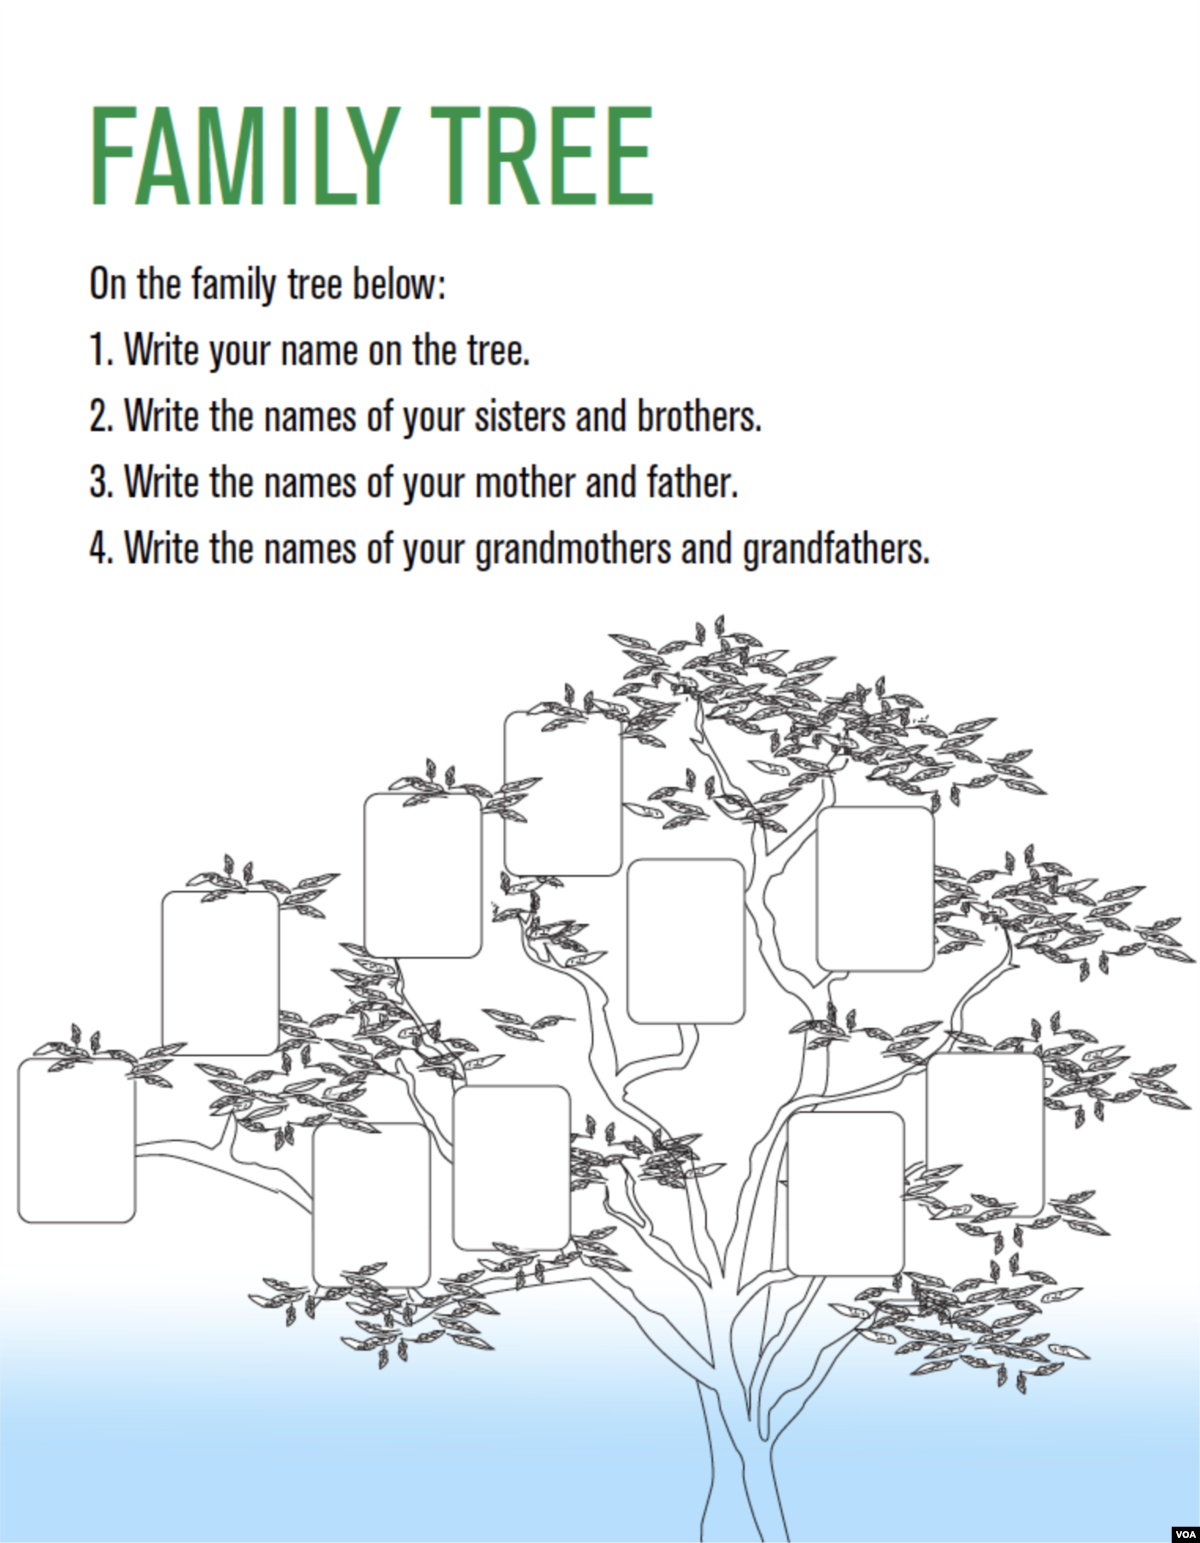 Family Tree Poster for Women Teaching Women English Unit 1